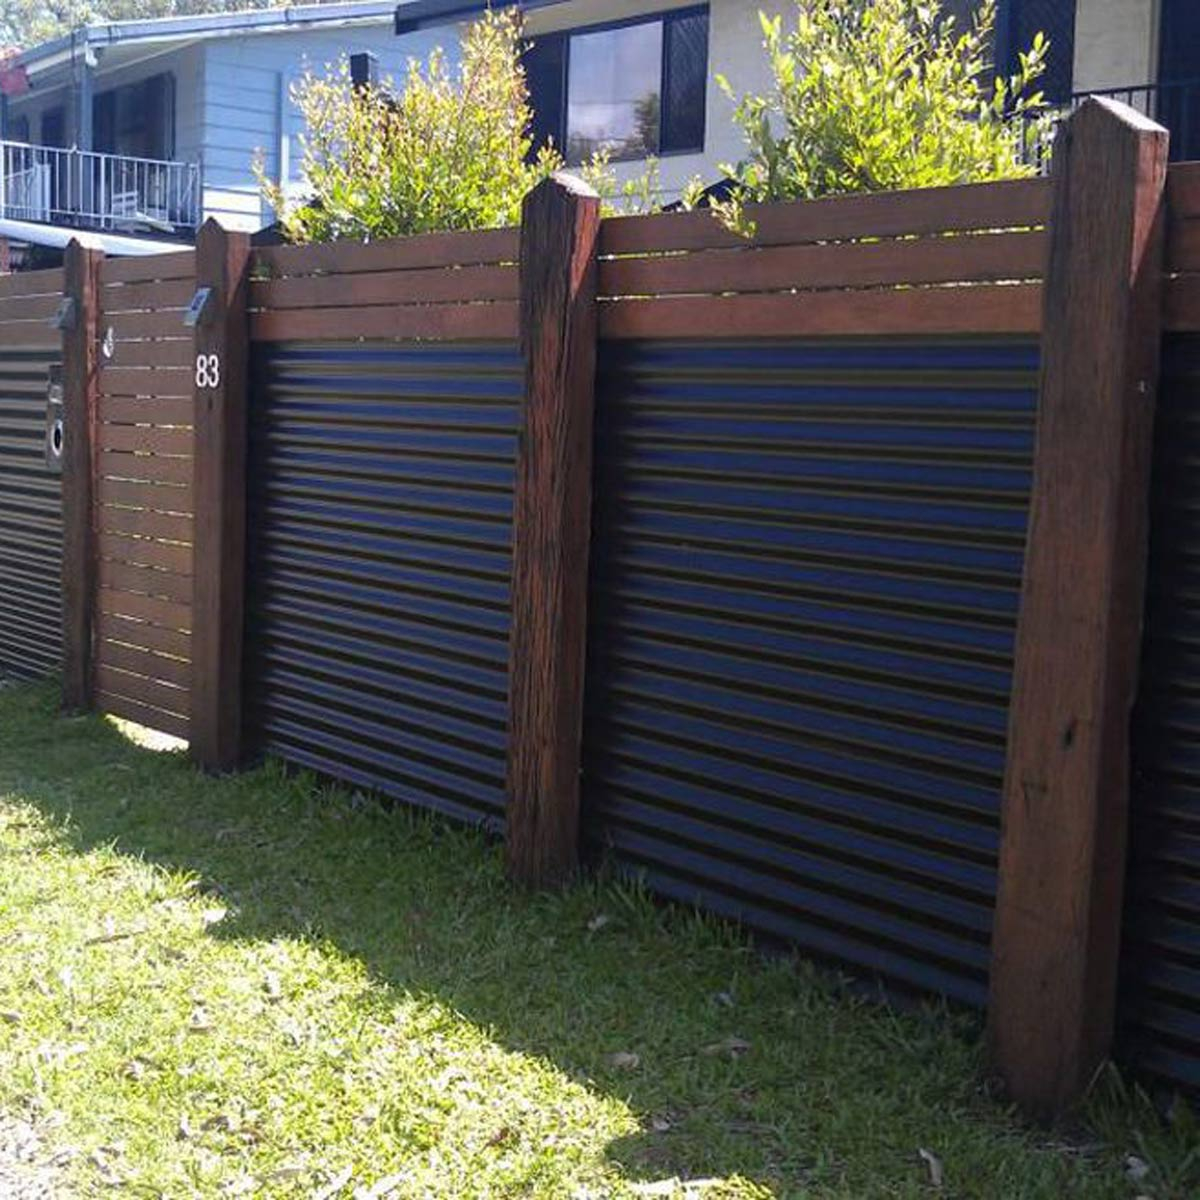 Yard Fencing 10 Modern Fence Ideas Family Handyman intended for Backyard Fence Styles